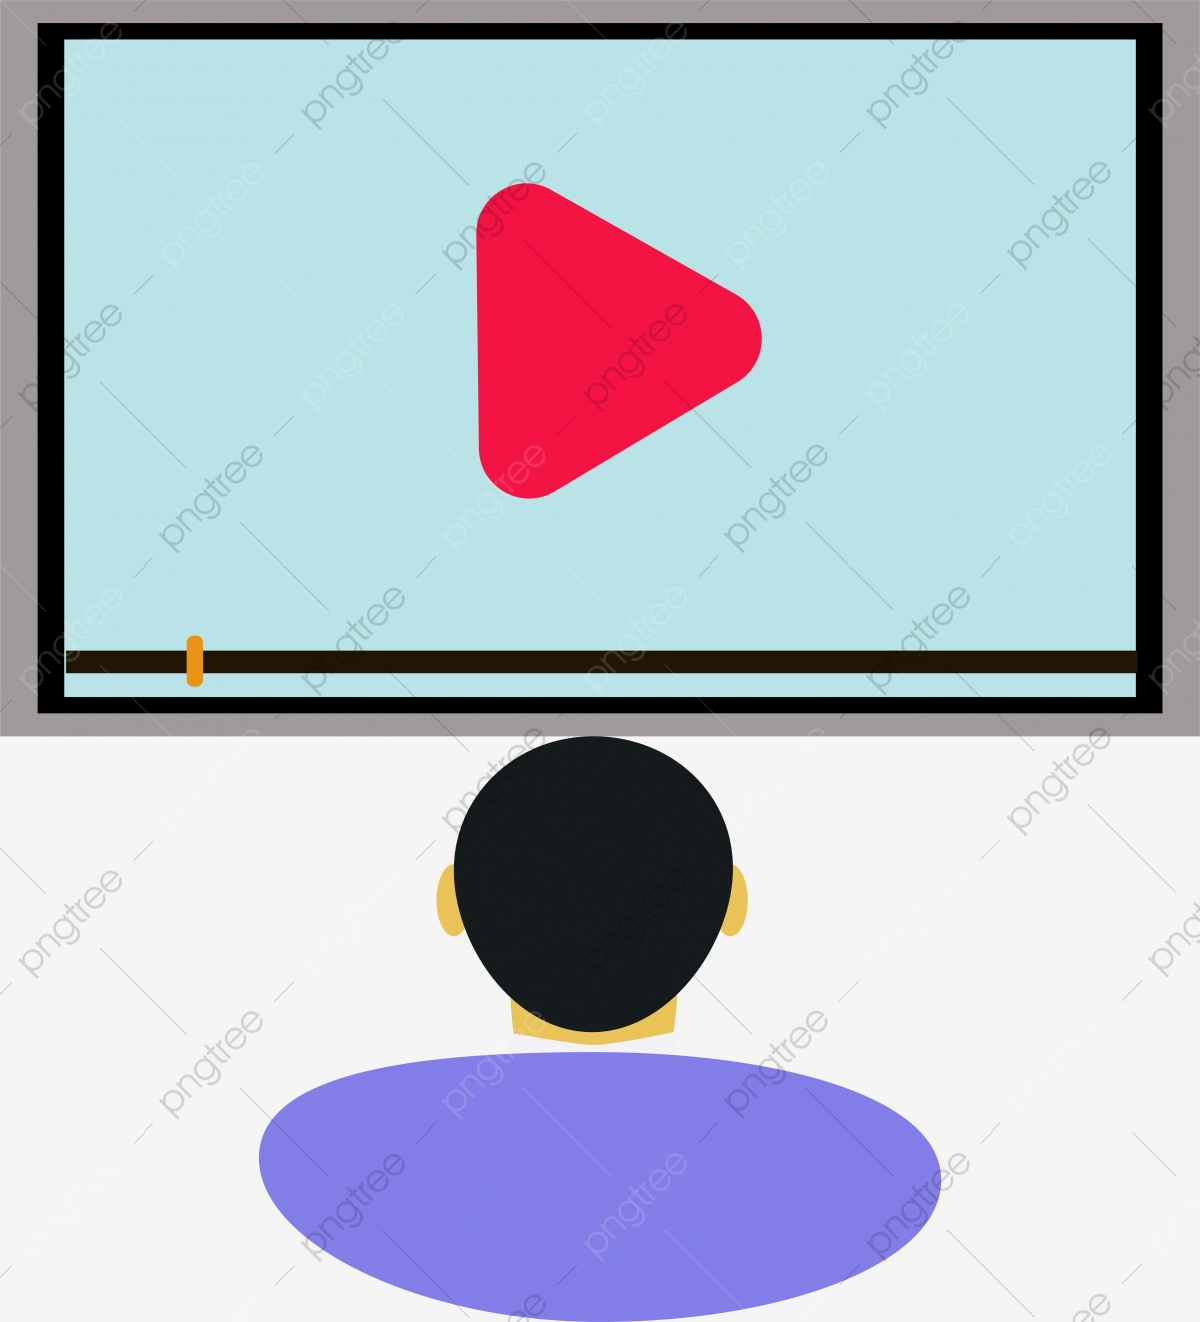 Cartoon Minimalist Watching Video Pictures Cartoon Simple Small Png And Vector With Transparent Background For Free Download